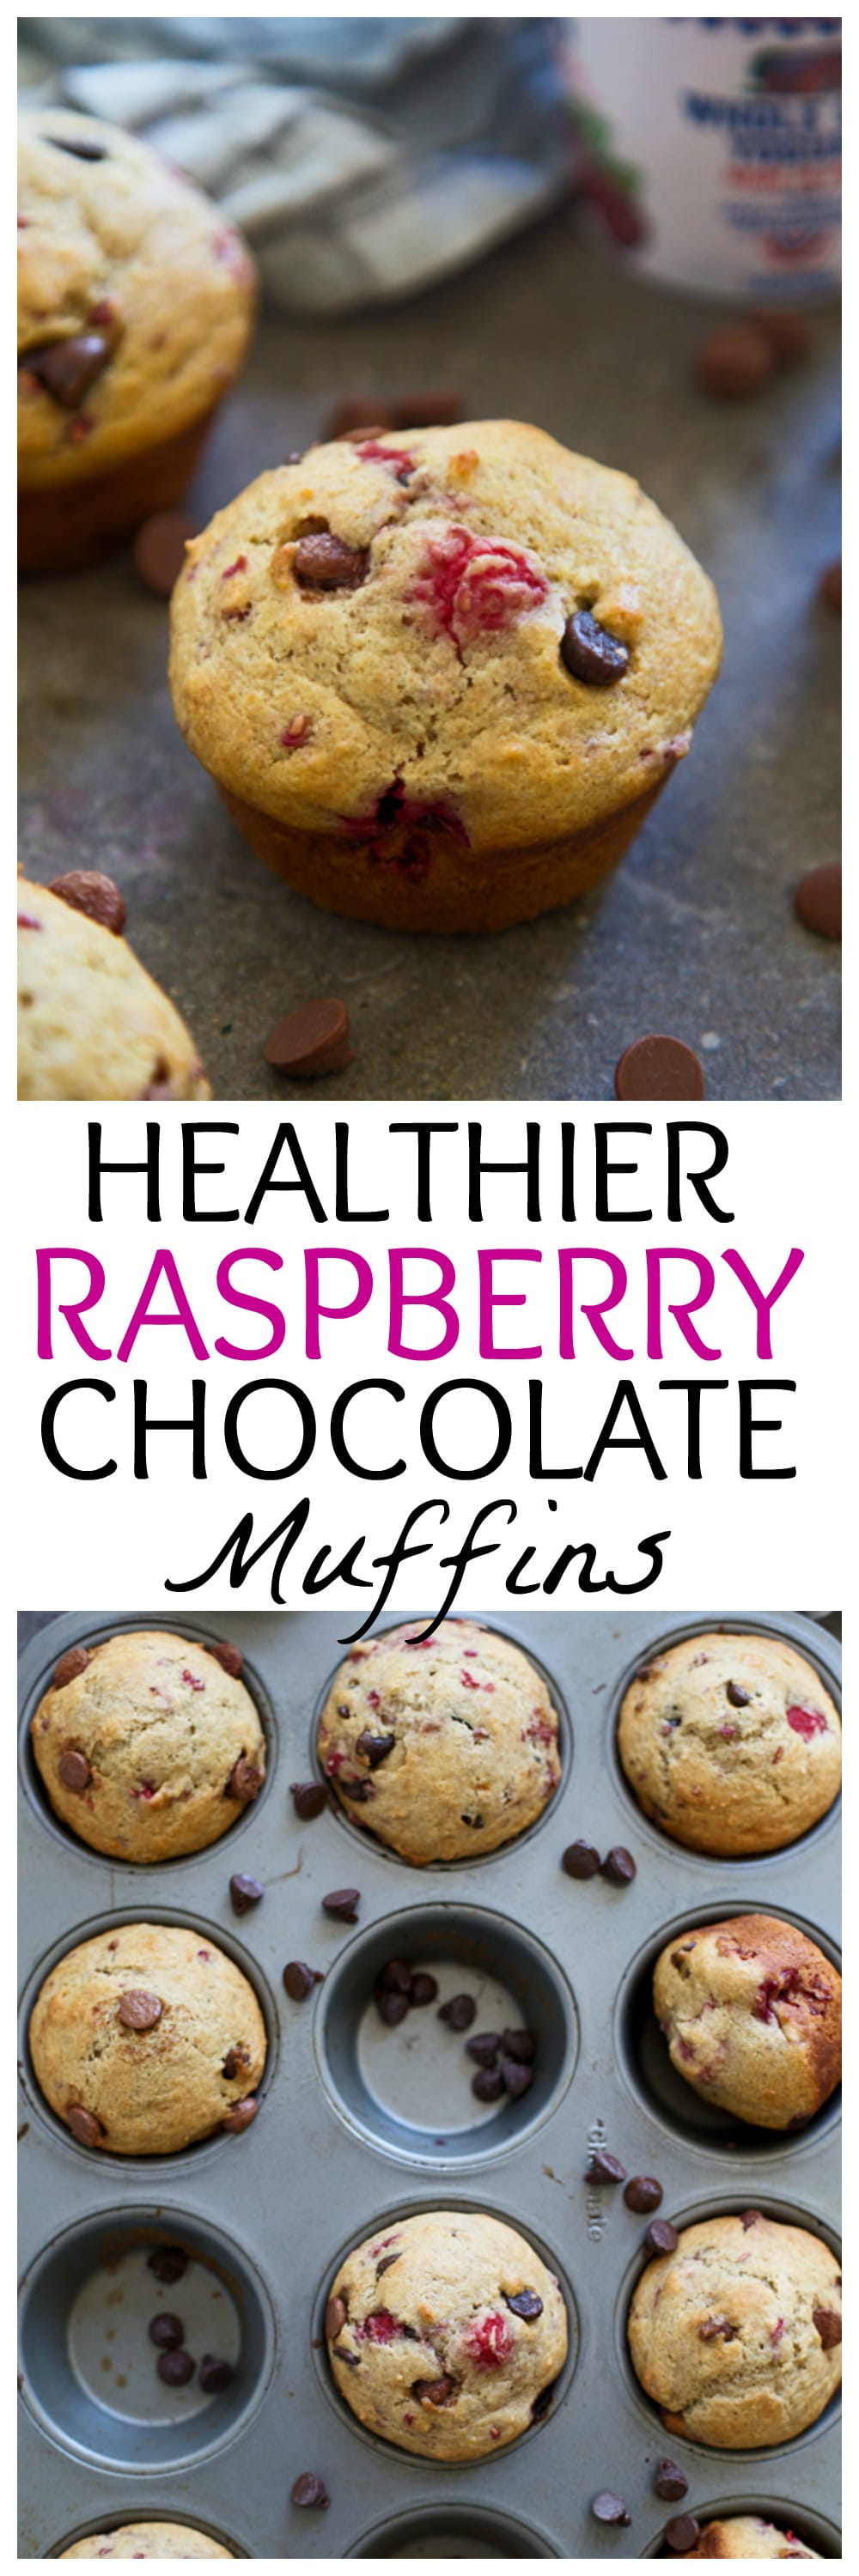 Healthier Raspberry Chocolate Muffins